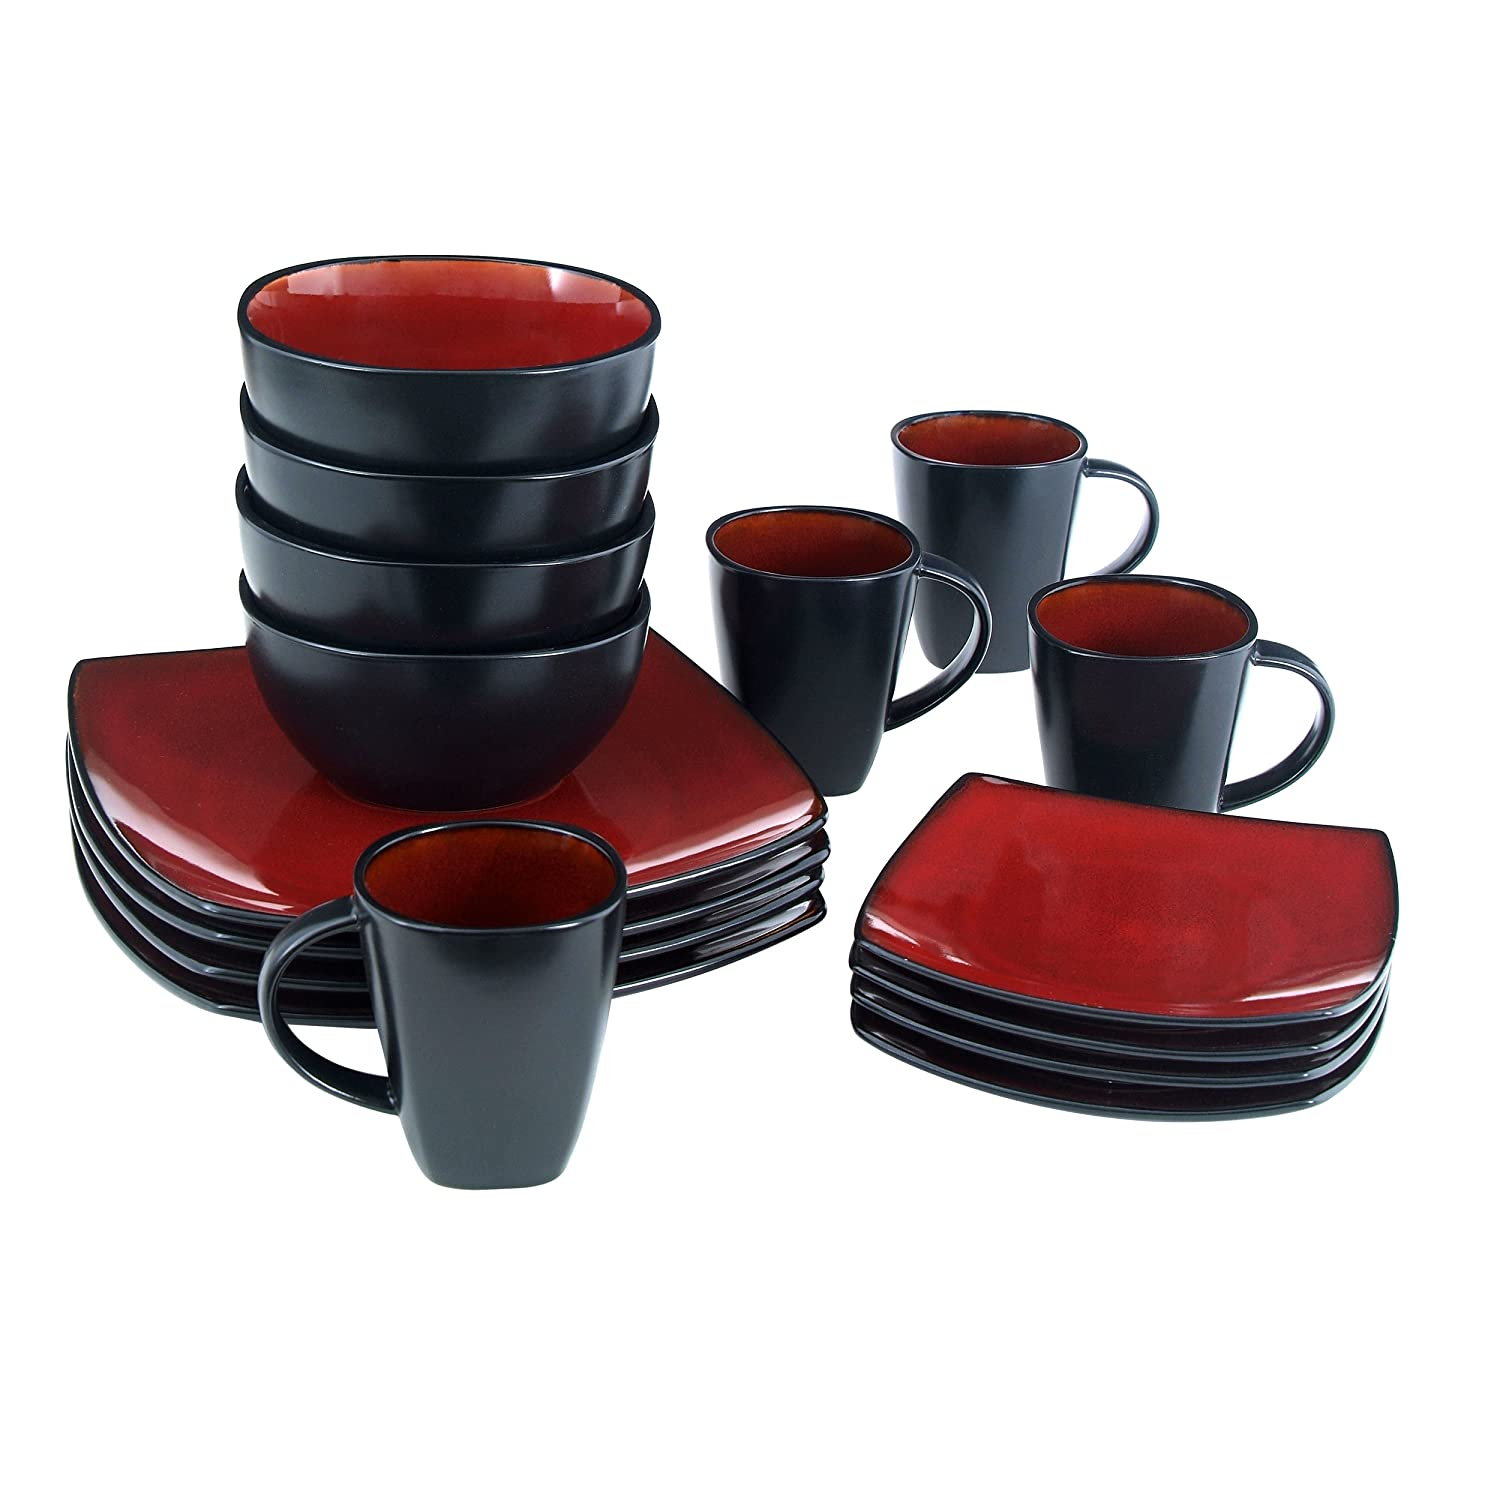 Amazon.com Gibson Soho Lounge 16-Piece Square Reactive Glaze Dinnerware Set Red Kitchen \u0026 Dining  sc 1 st  Amazon.com : home dinnerware set - pezcame.com